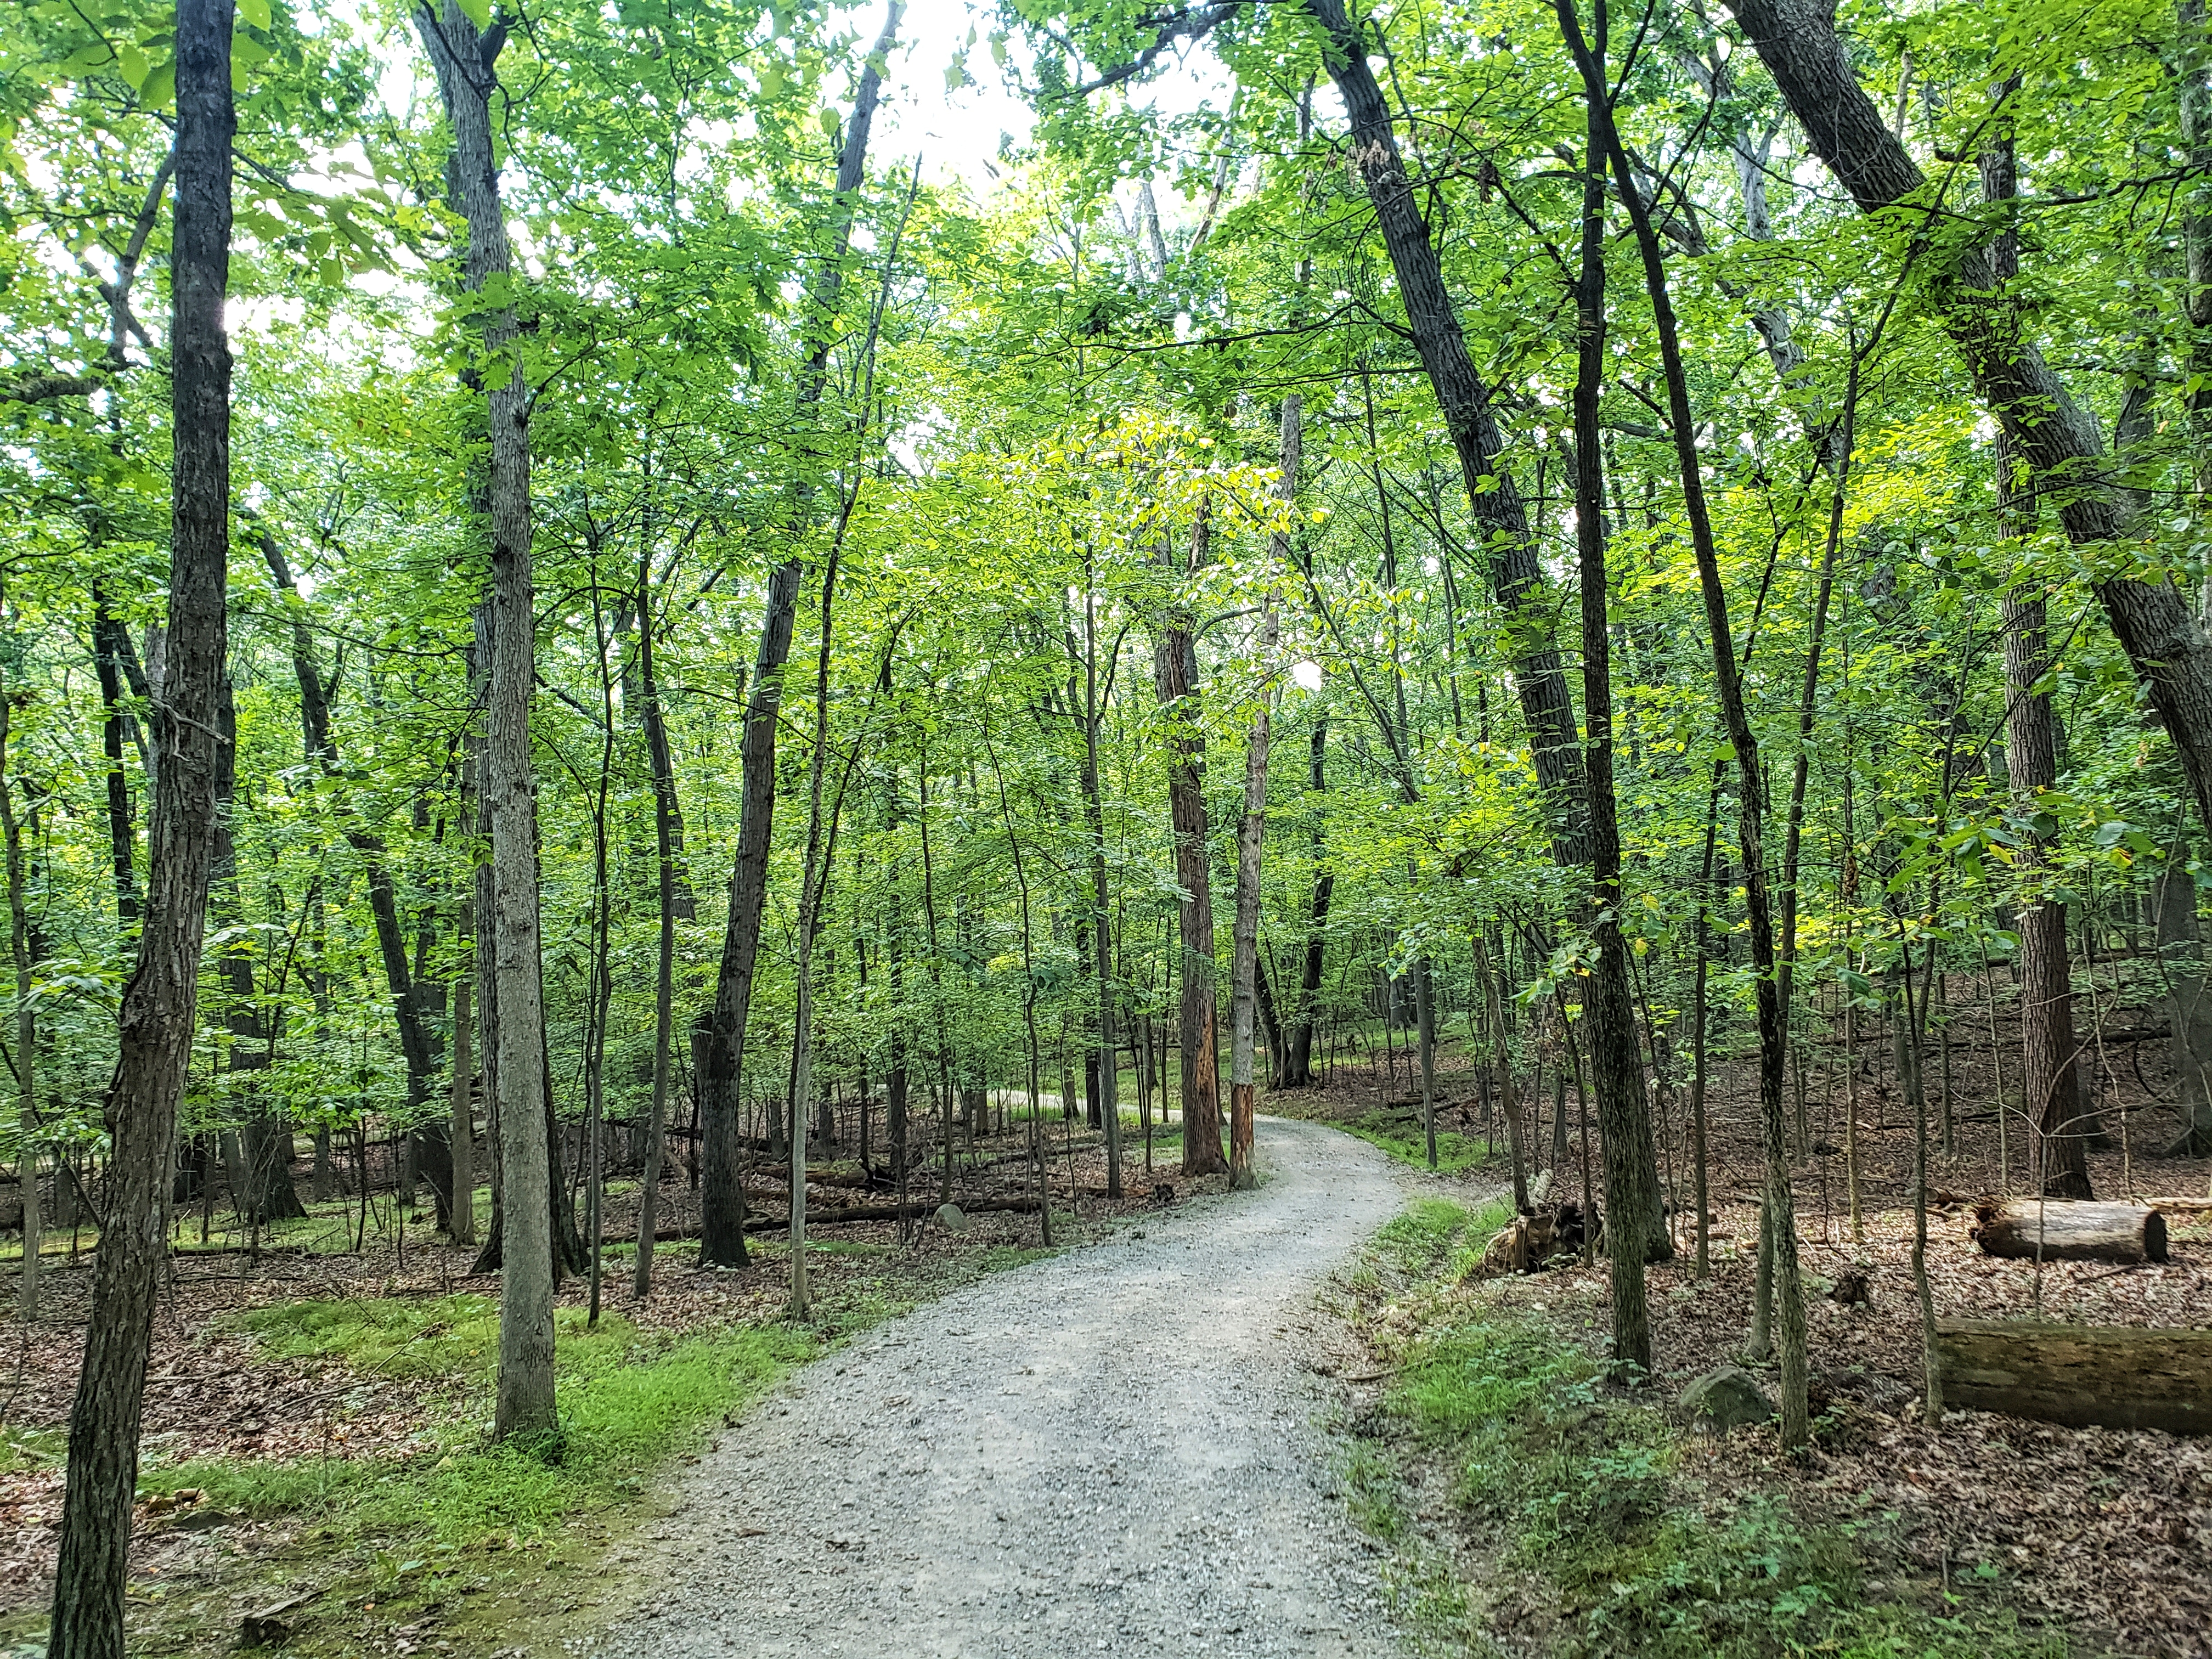 The trail leads further into woods at the West Bloom Field Nature Preserve Trail